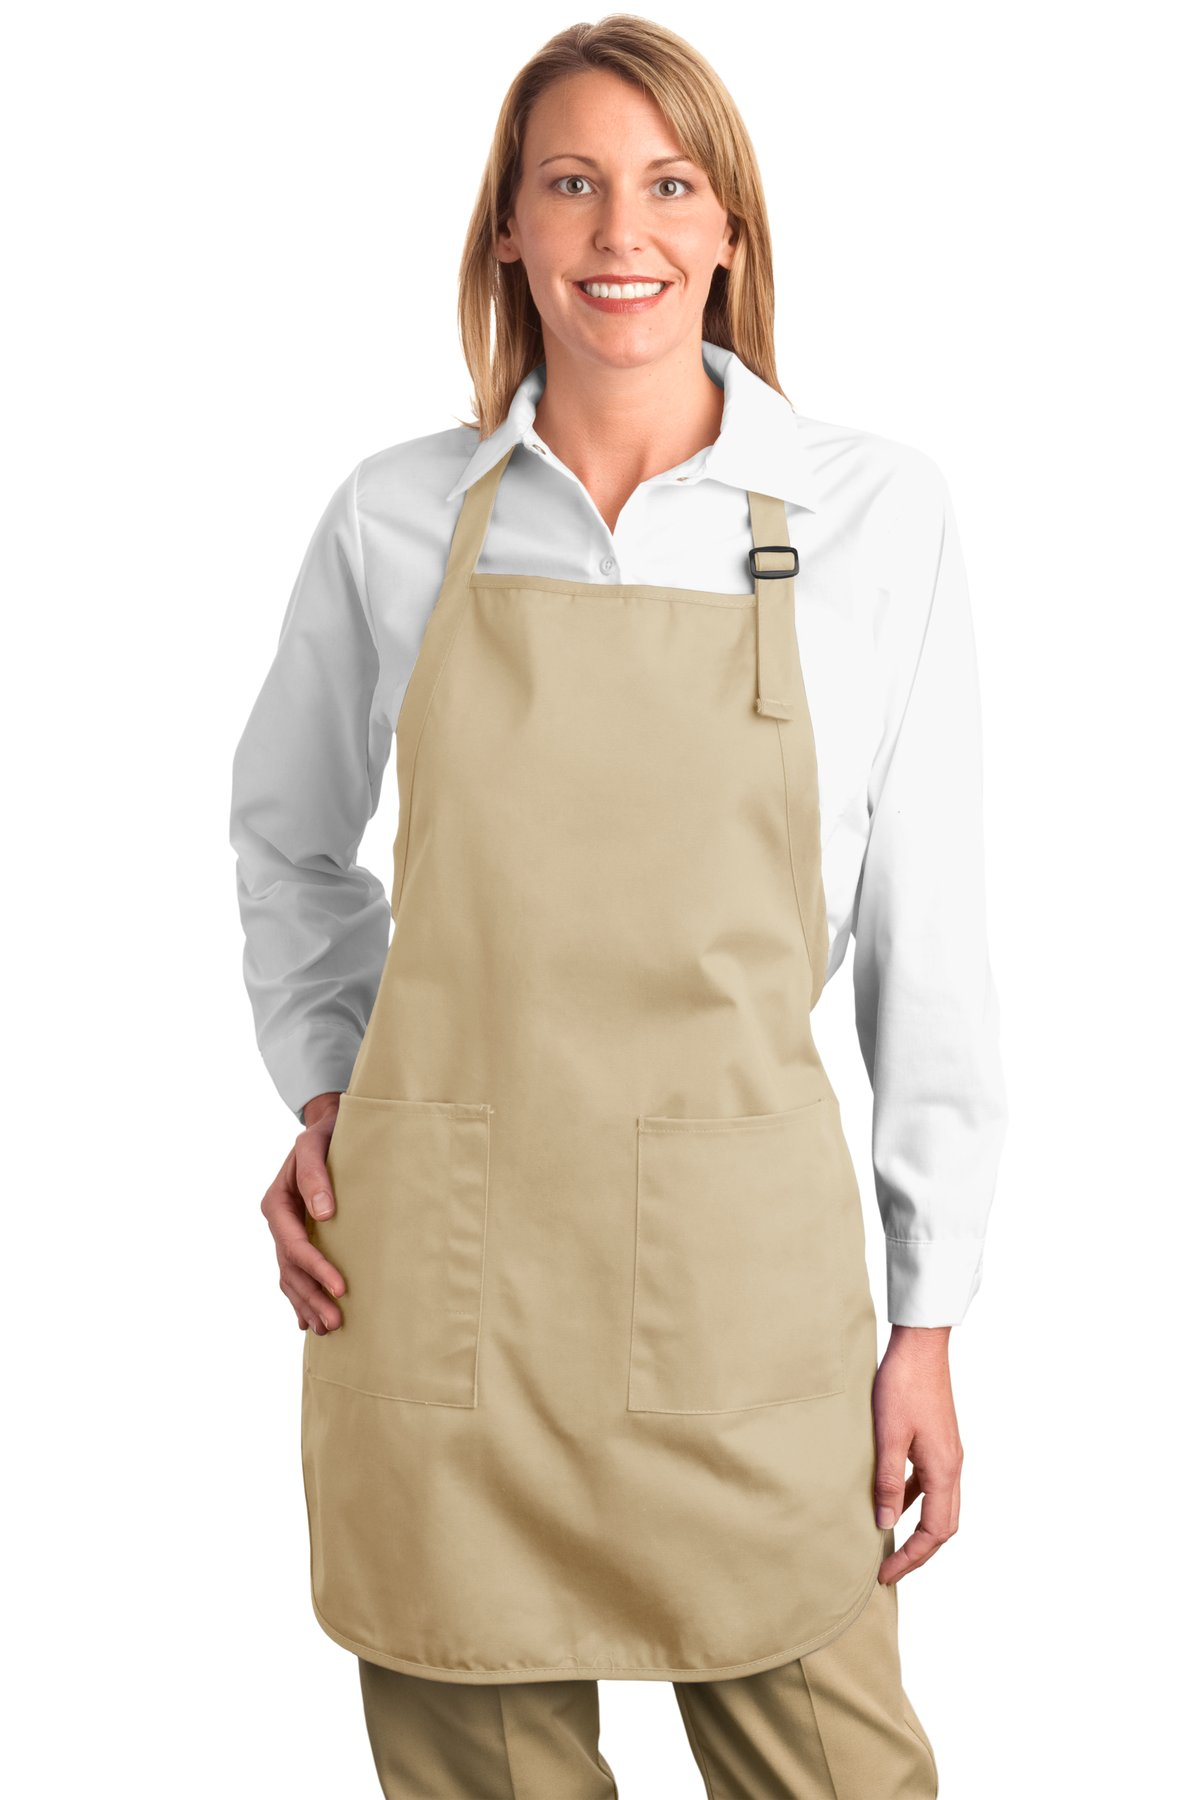 Port Authority ®  Full-Length Apron with Pockets.  A500 - Stone